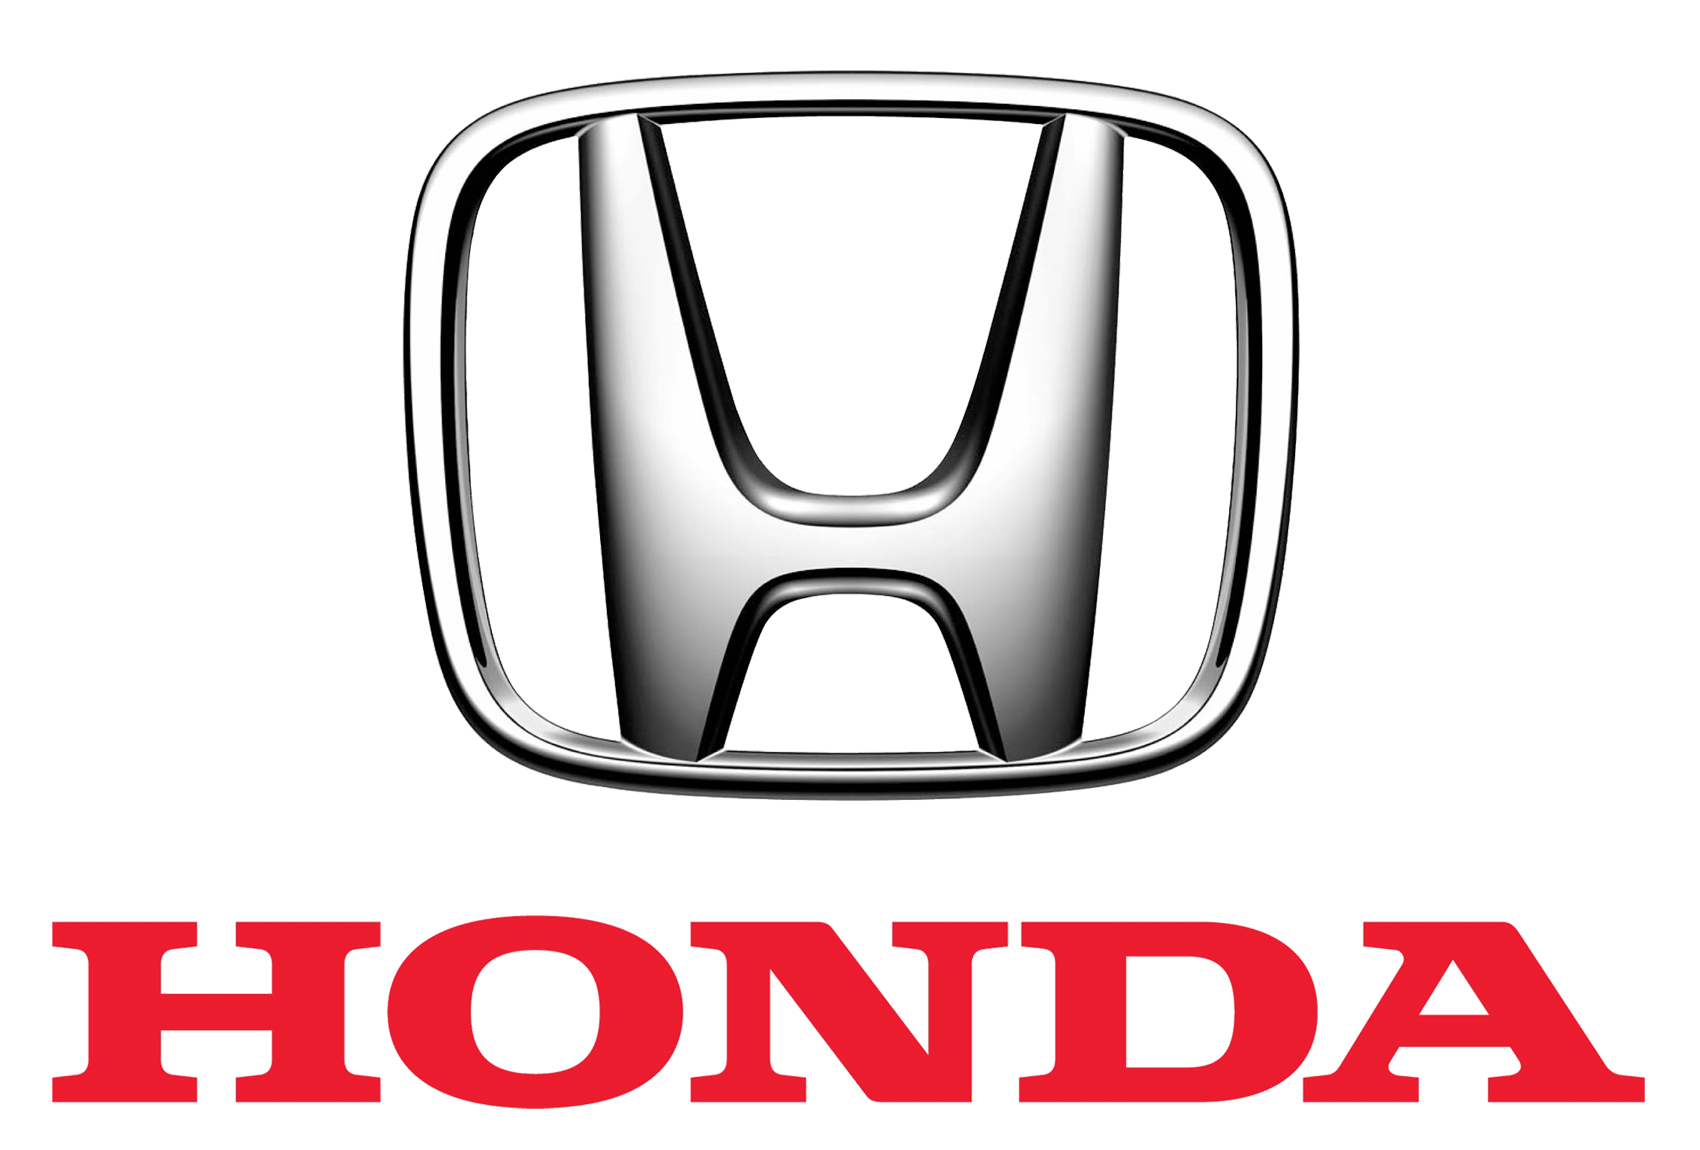 Used HONDA Crosstour Engines For Sale